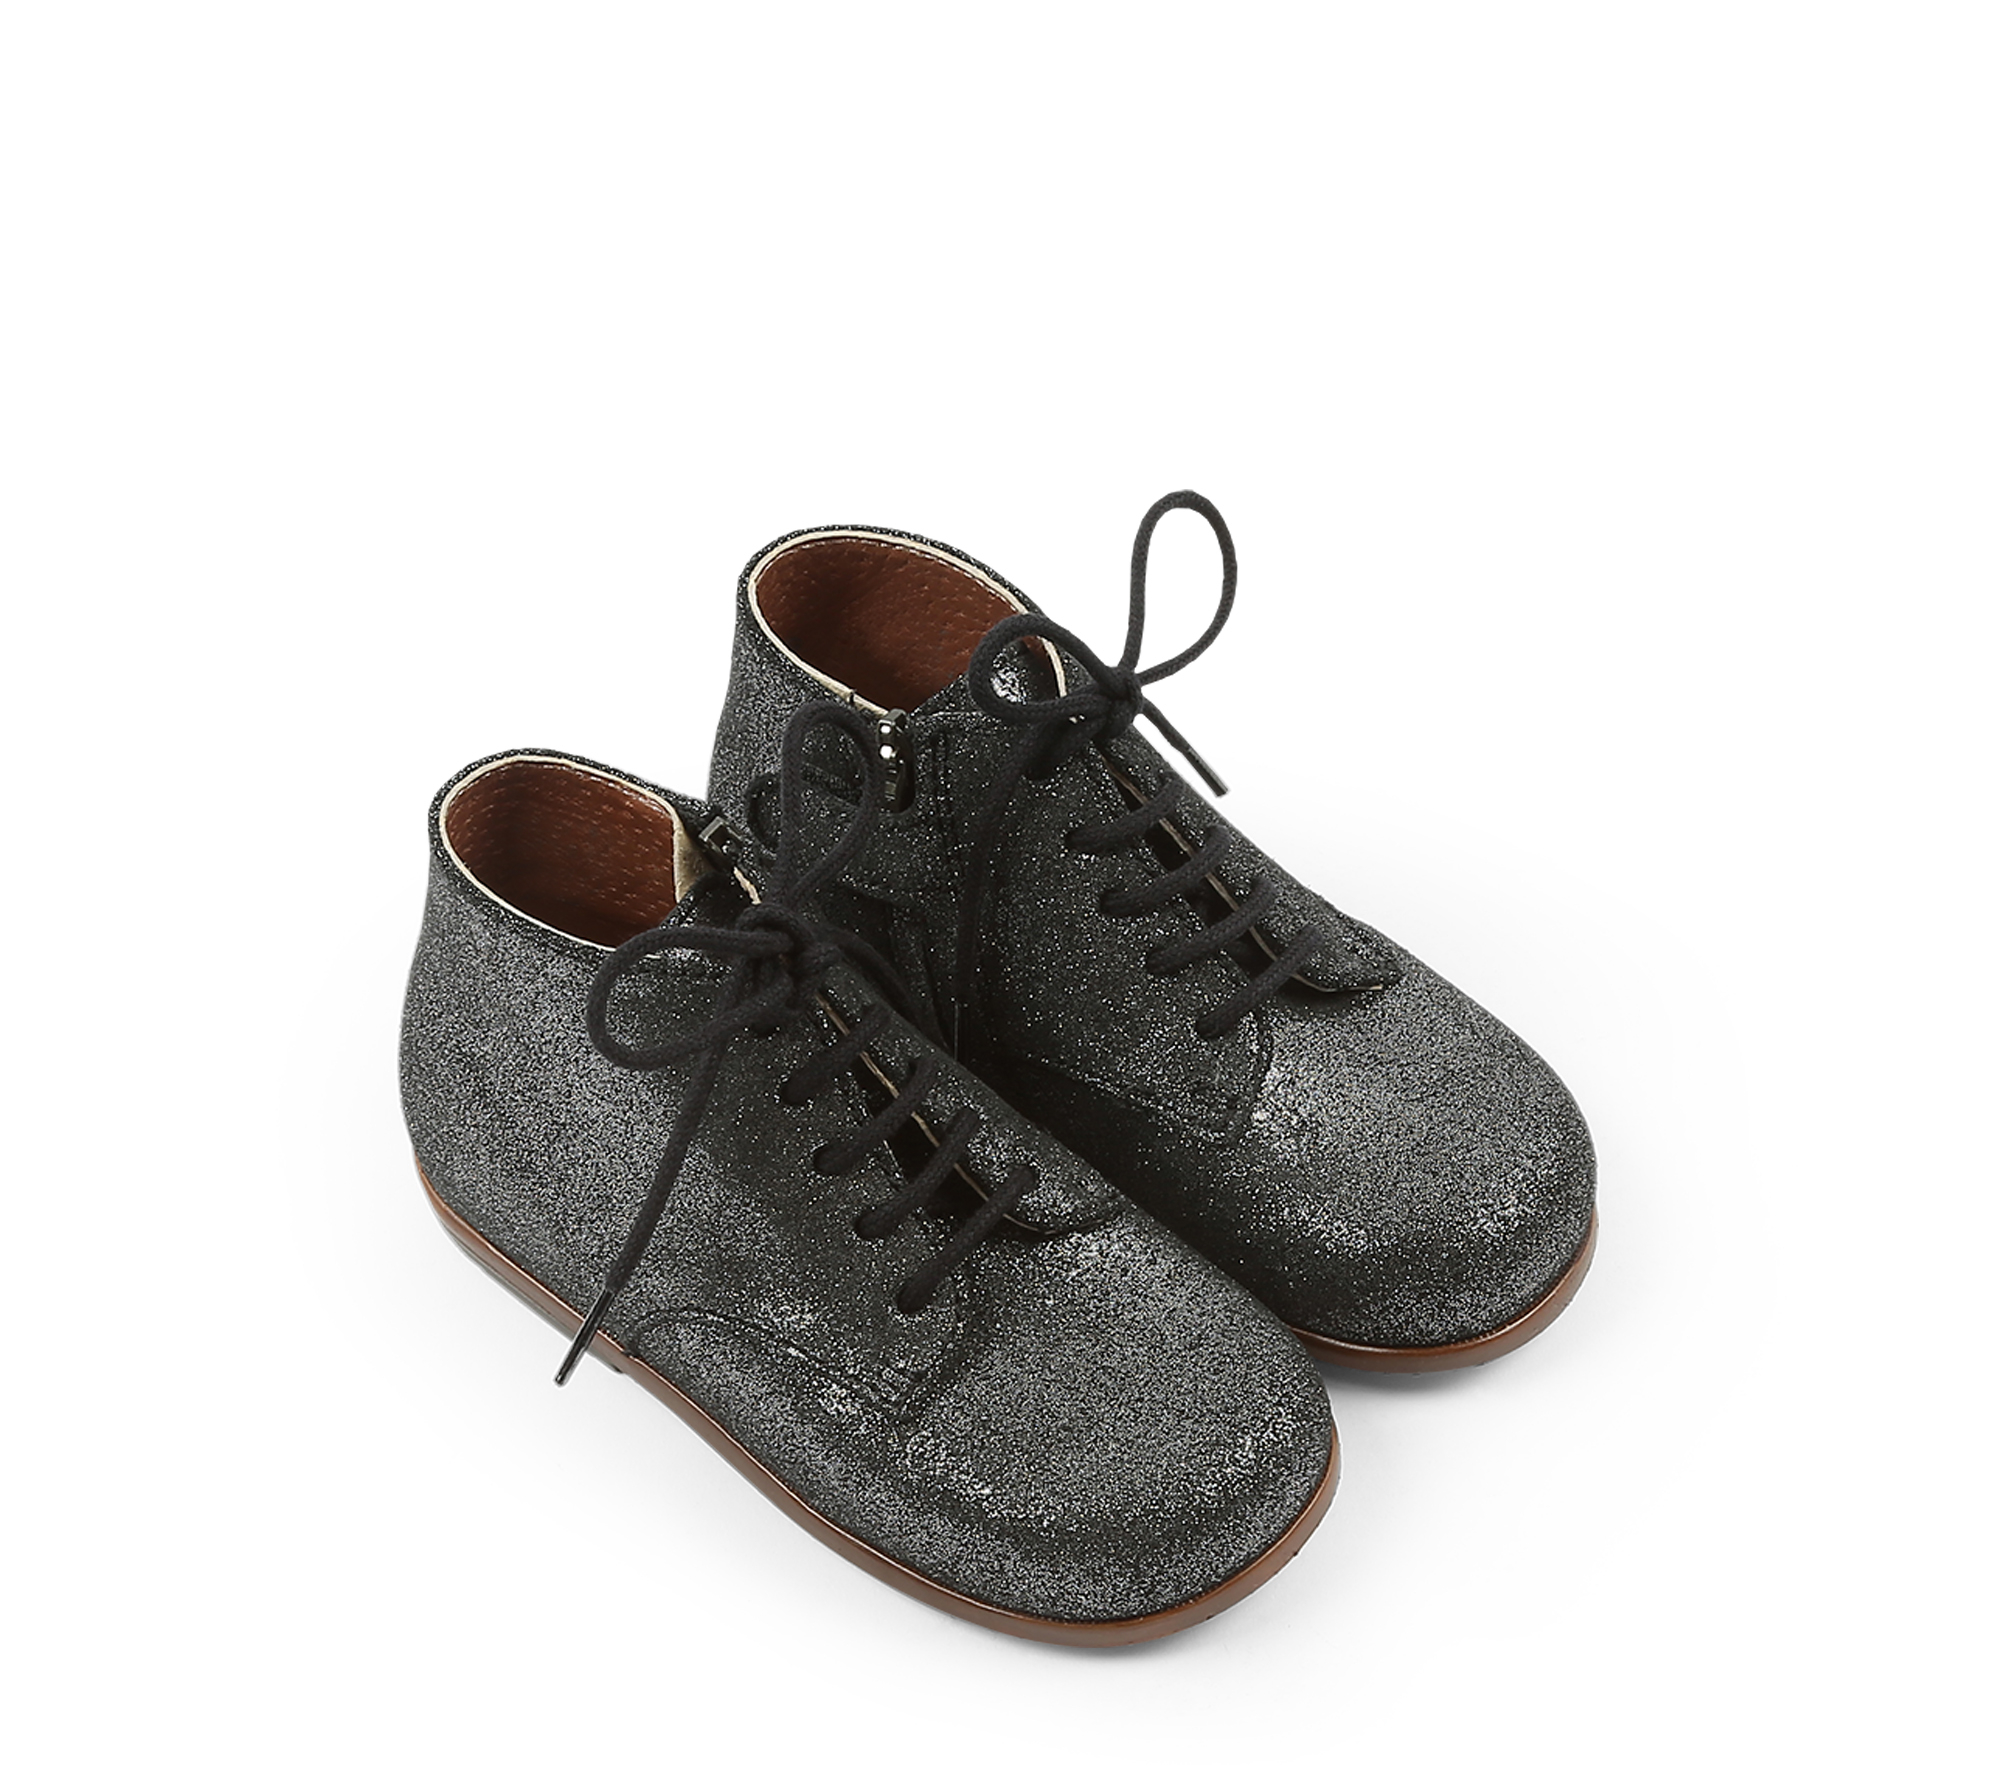 Kid oxford shoes - Toddler